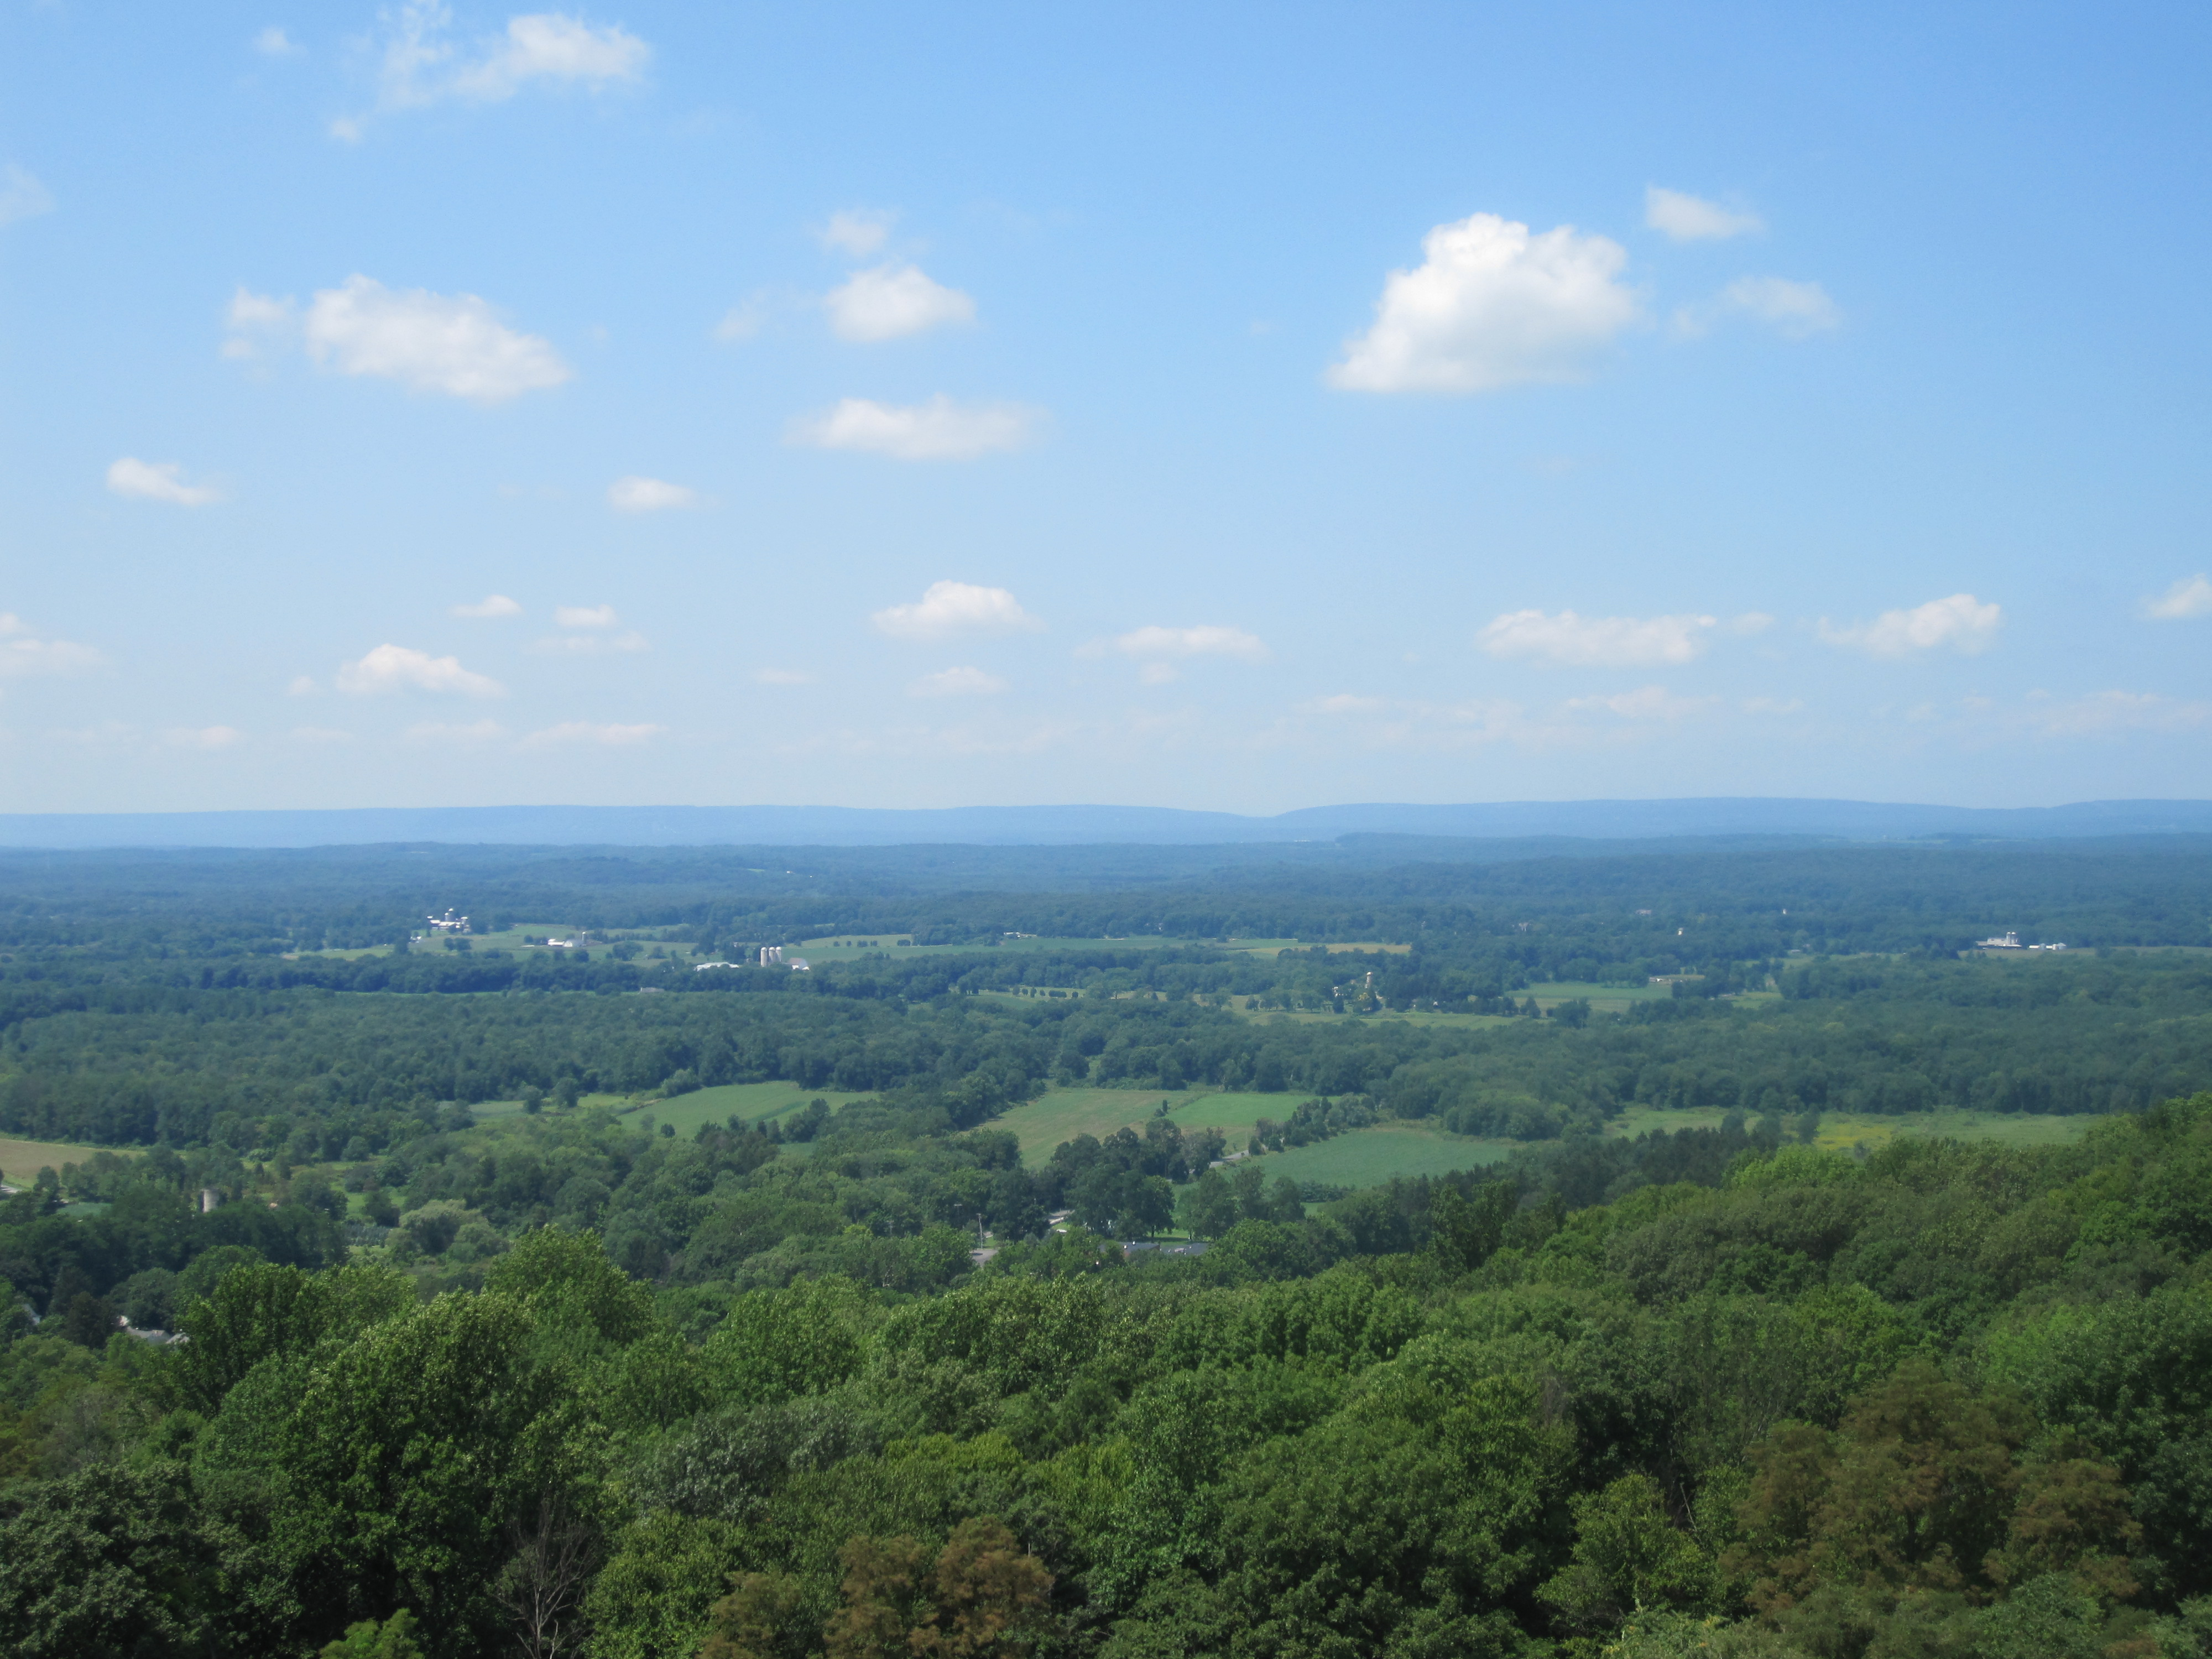 File:Scenery in Lackawanna County, PA IMG 1595.JPG  Wikimedia Commons